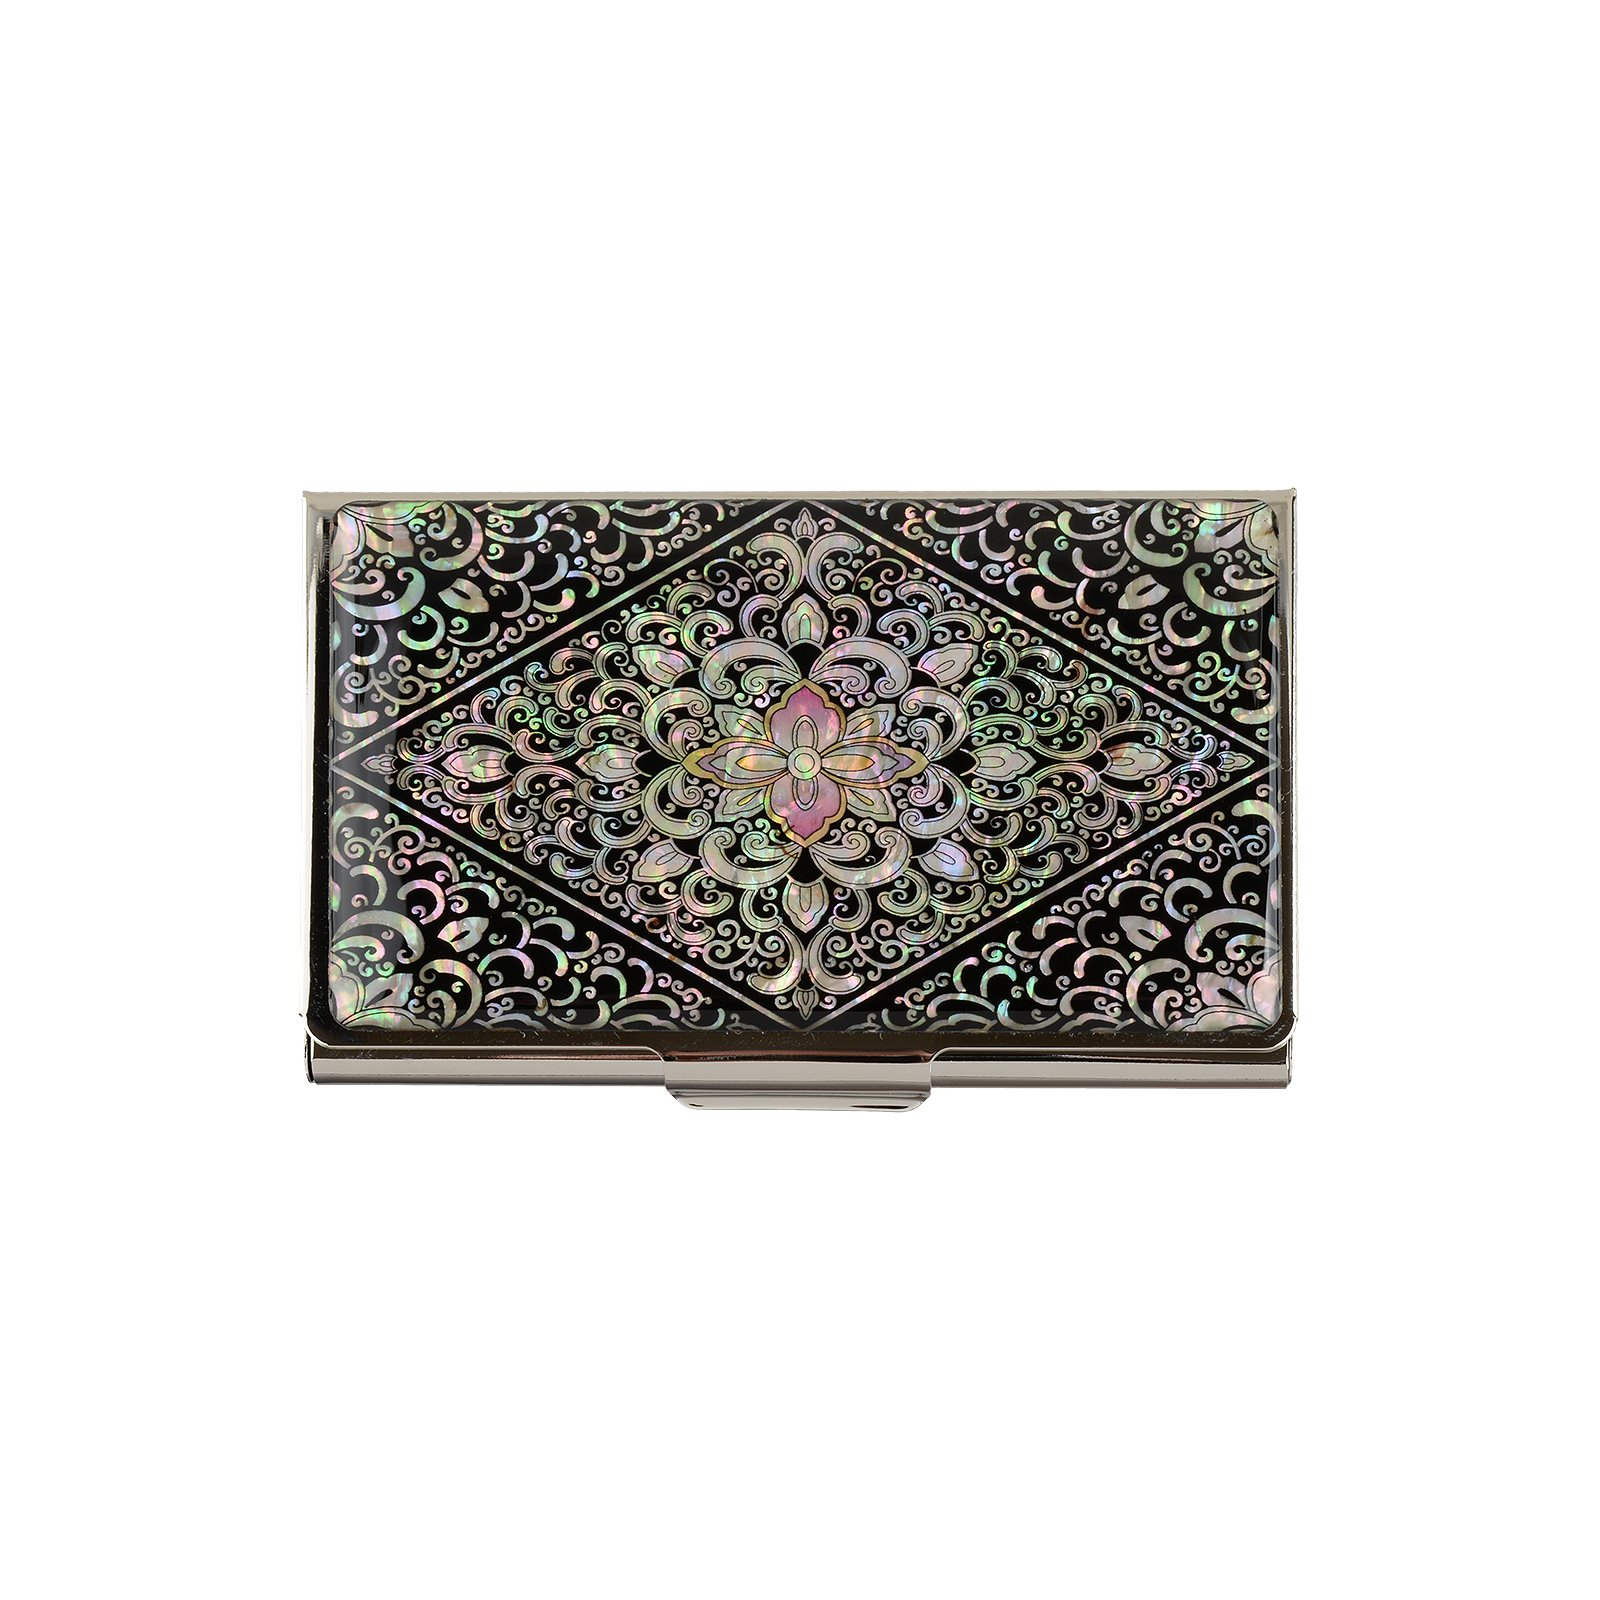 business name card holder stainless steel case Mother of Pearl Art Arabesque by MOP antique (Image #1)